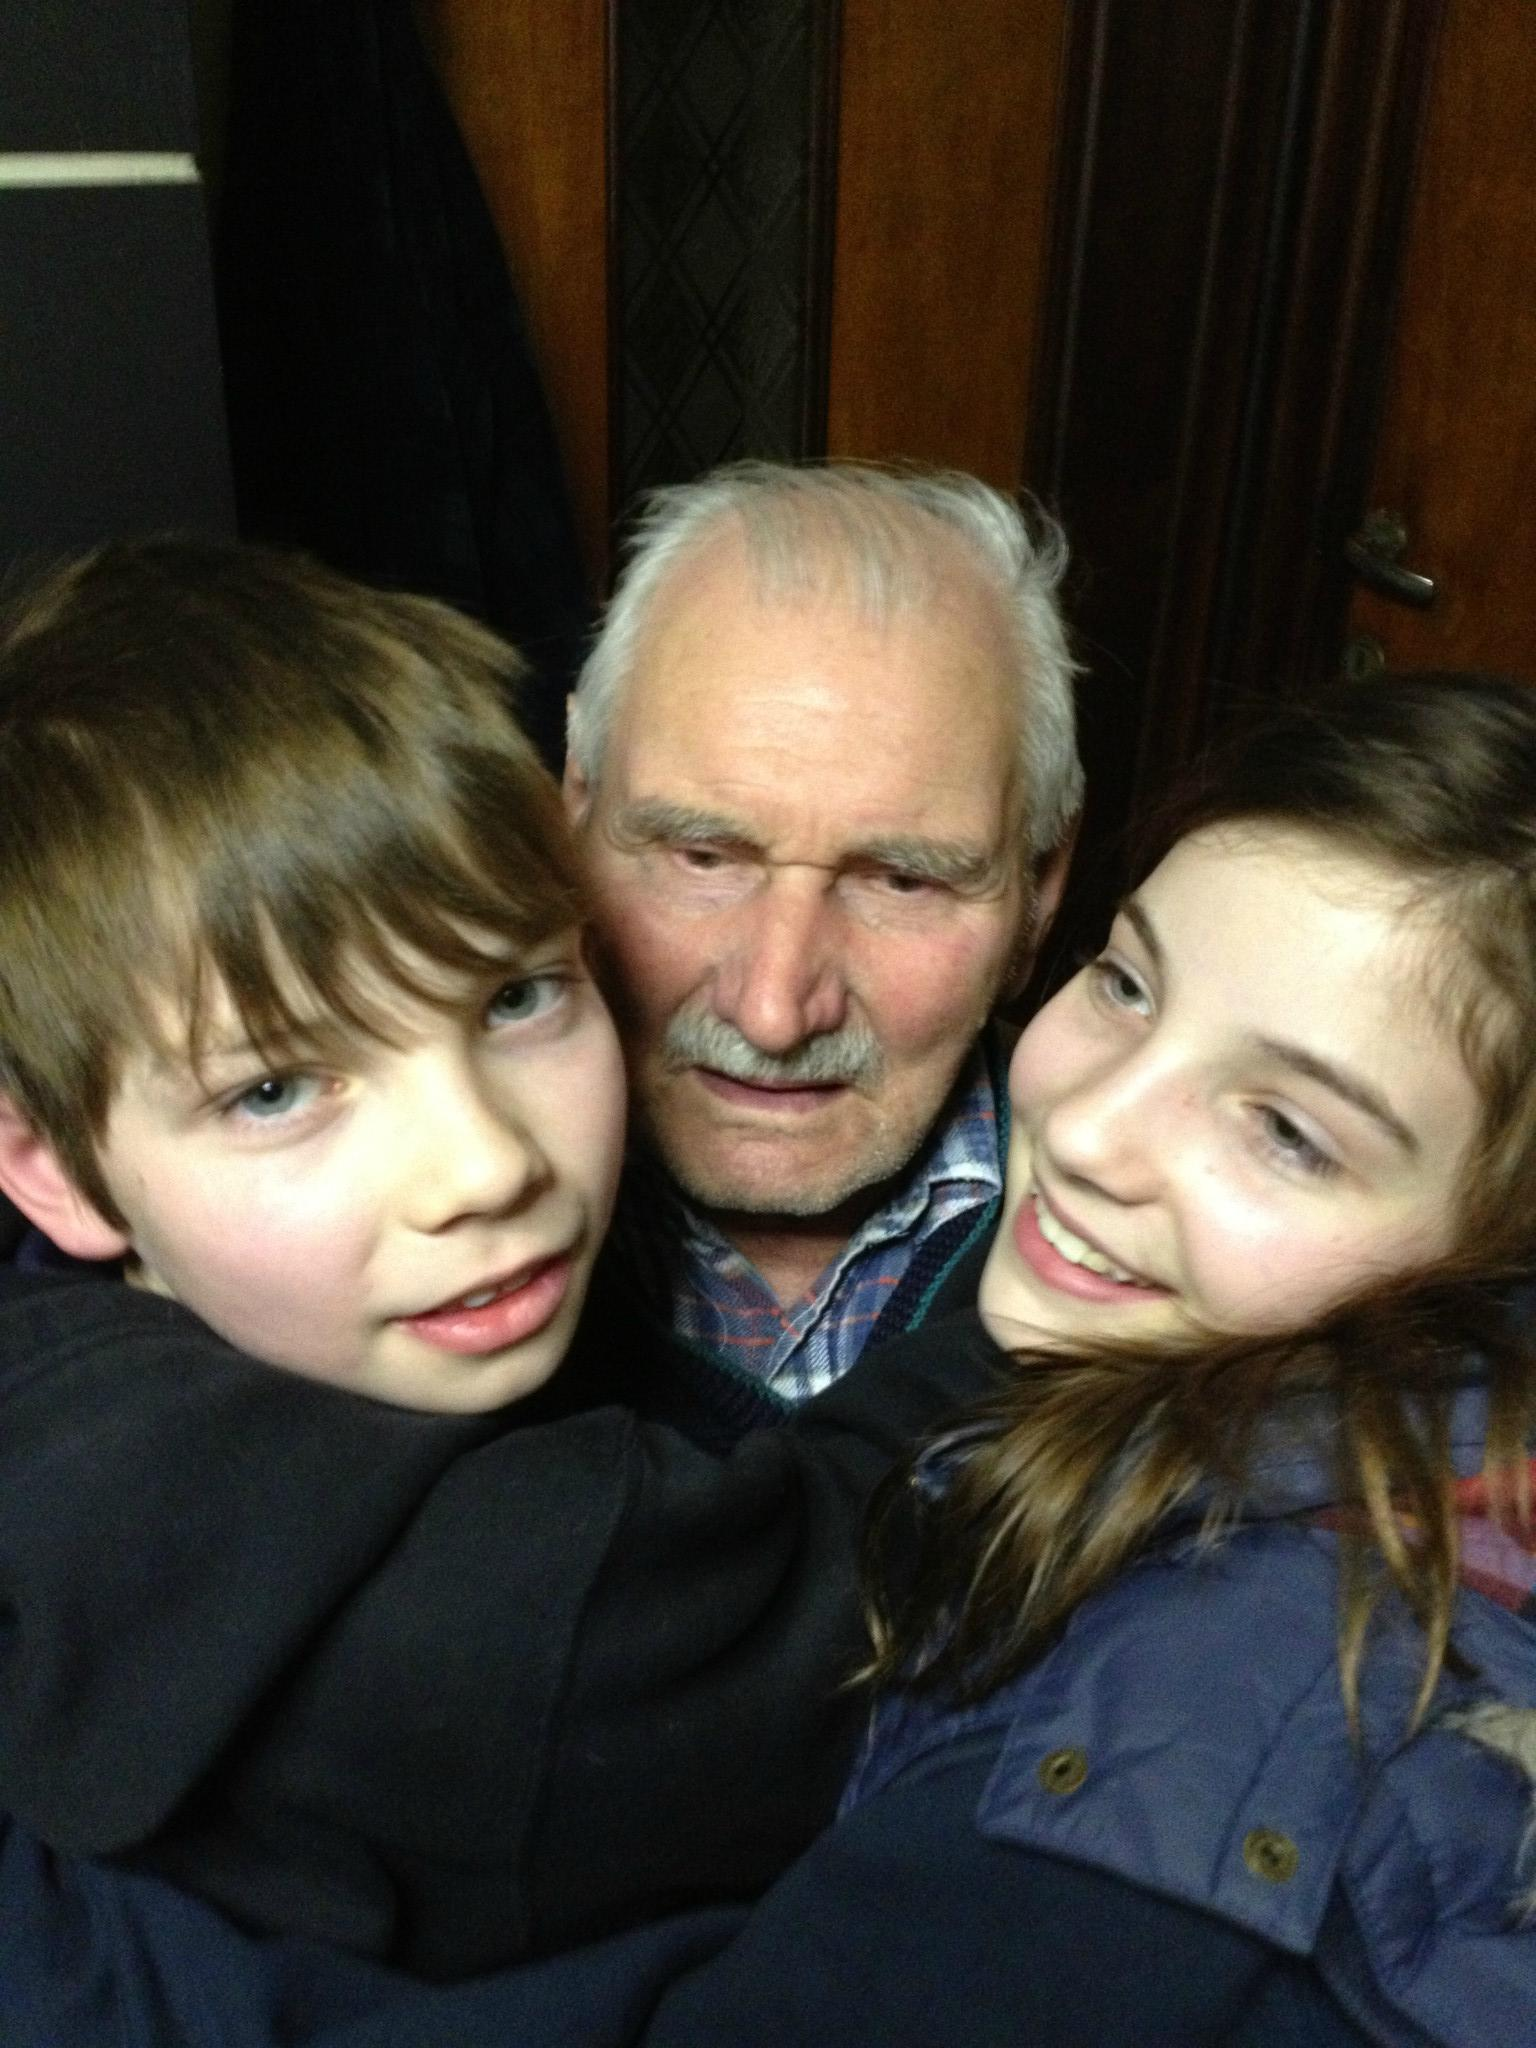 Granddad with my kids, Thomas and Rachel